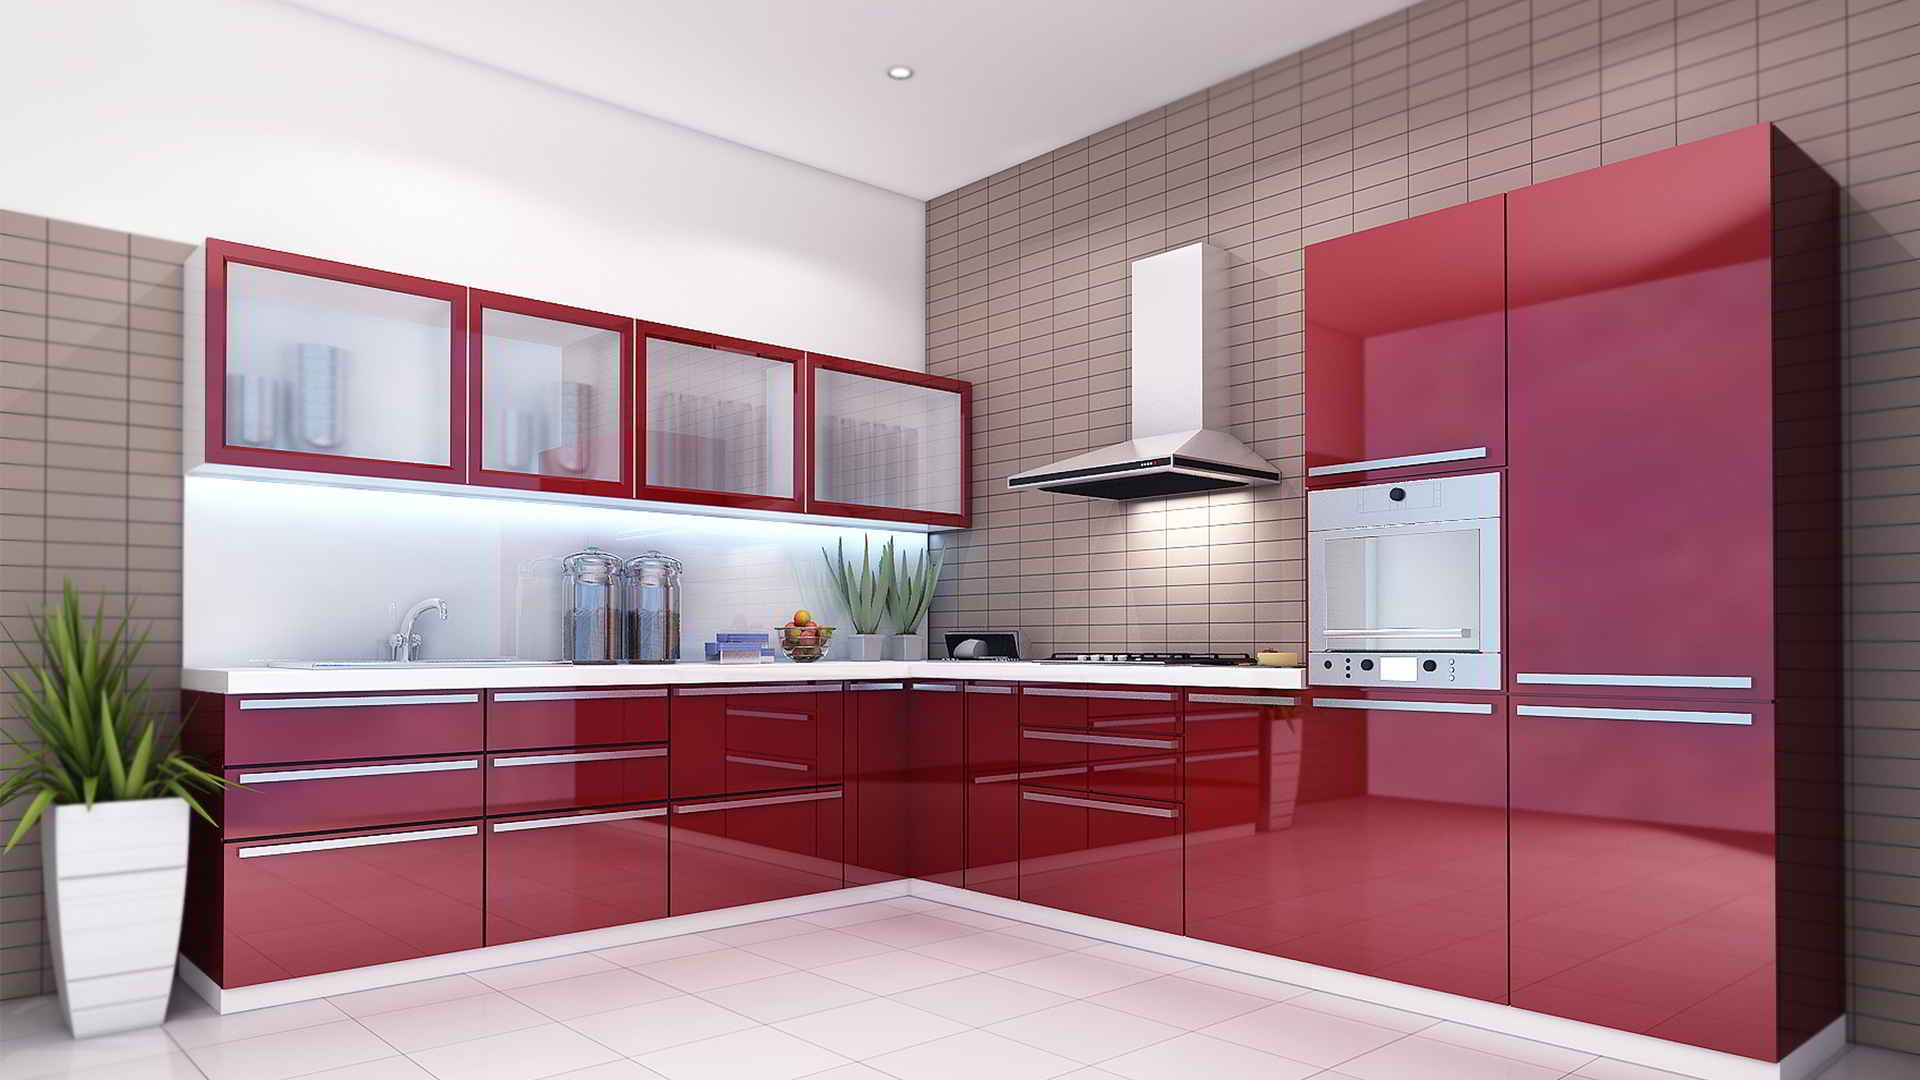 Find the ultimate modular kitchen interior solutions in Delhi